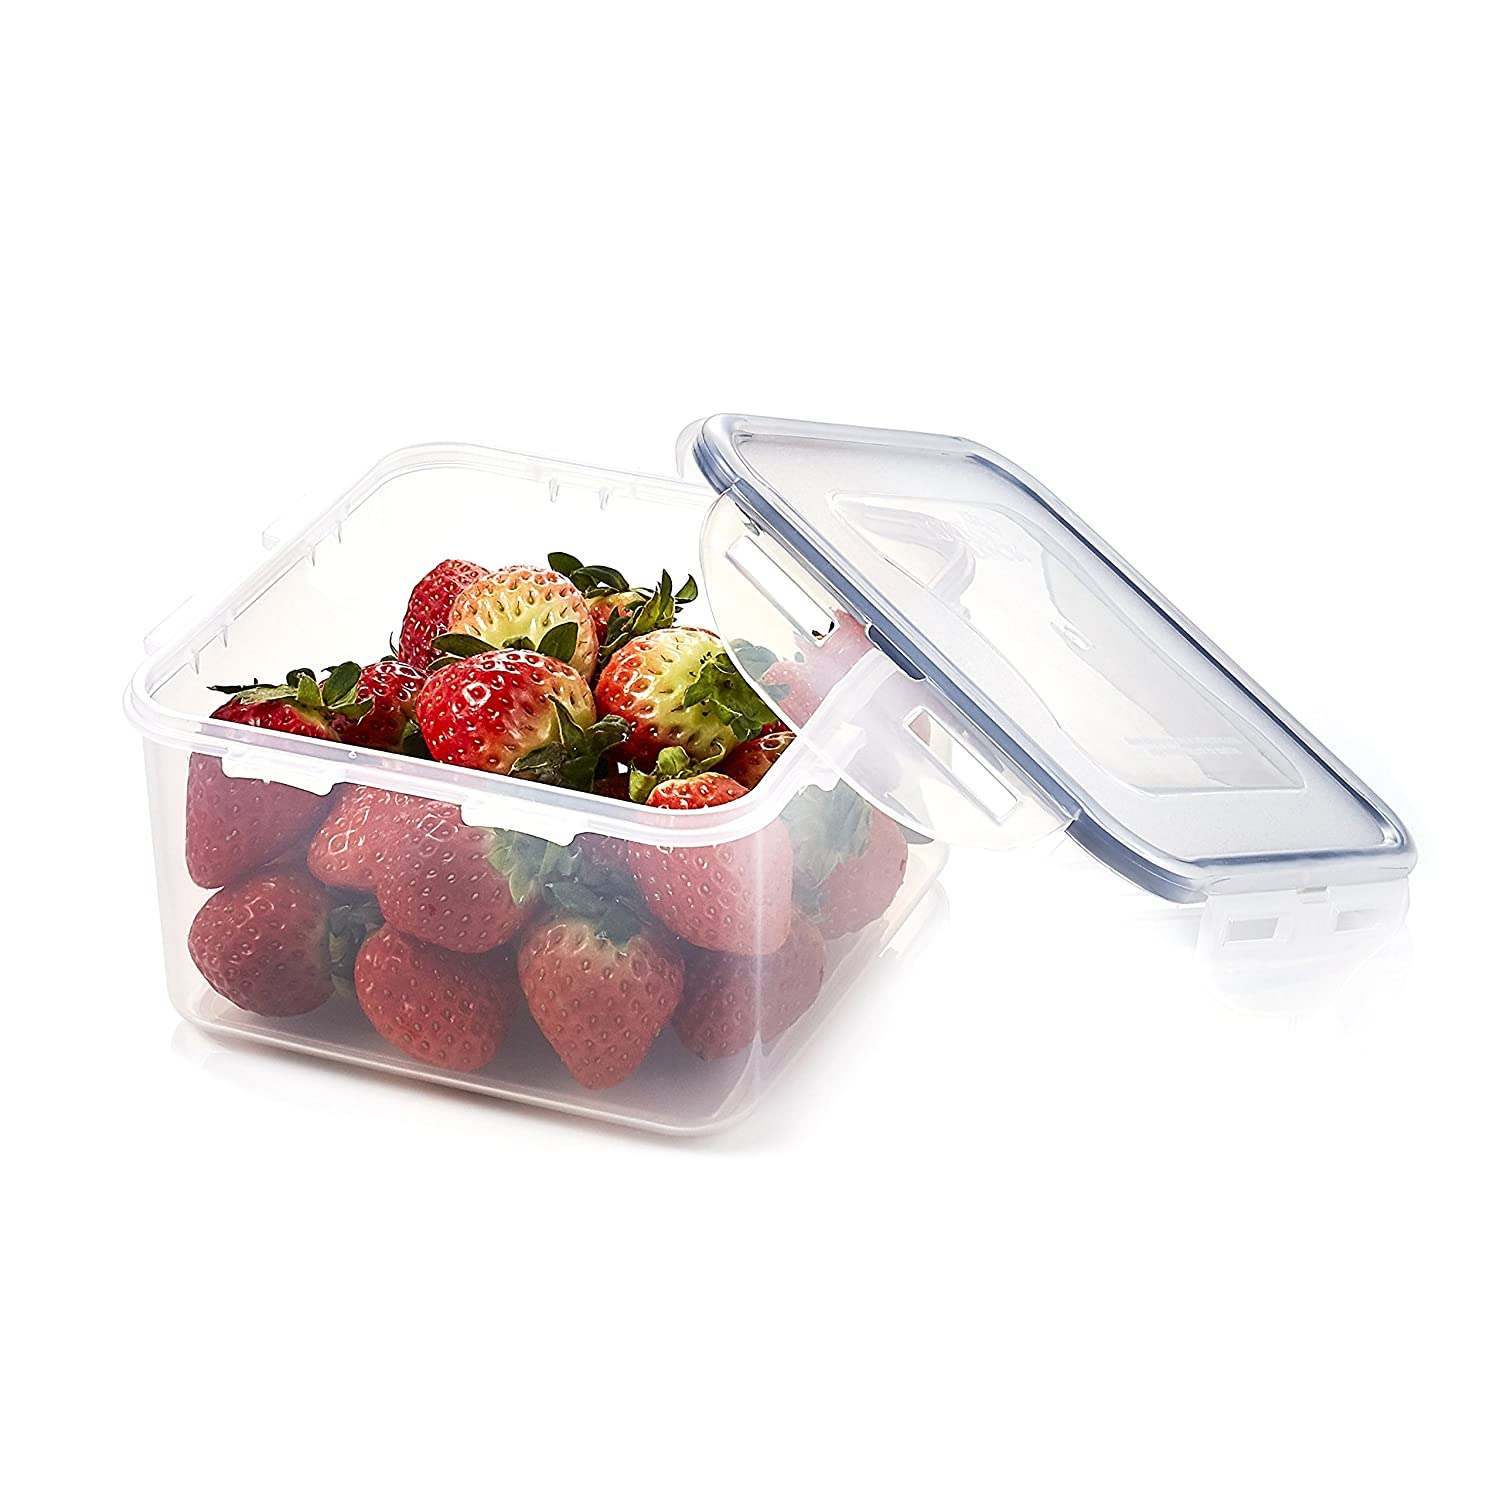 LOCK & LOCK Airtight Square Food Storage Container 40.58-oz / 5.07-cup